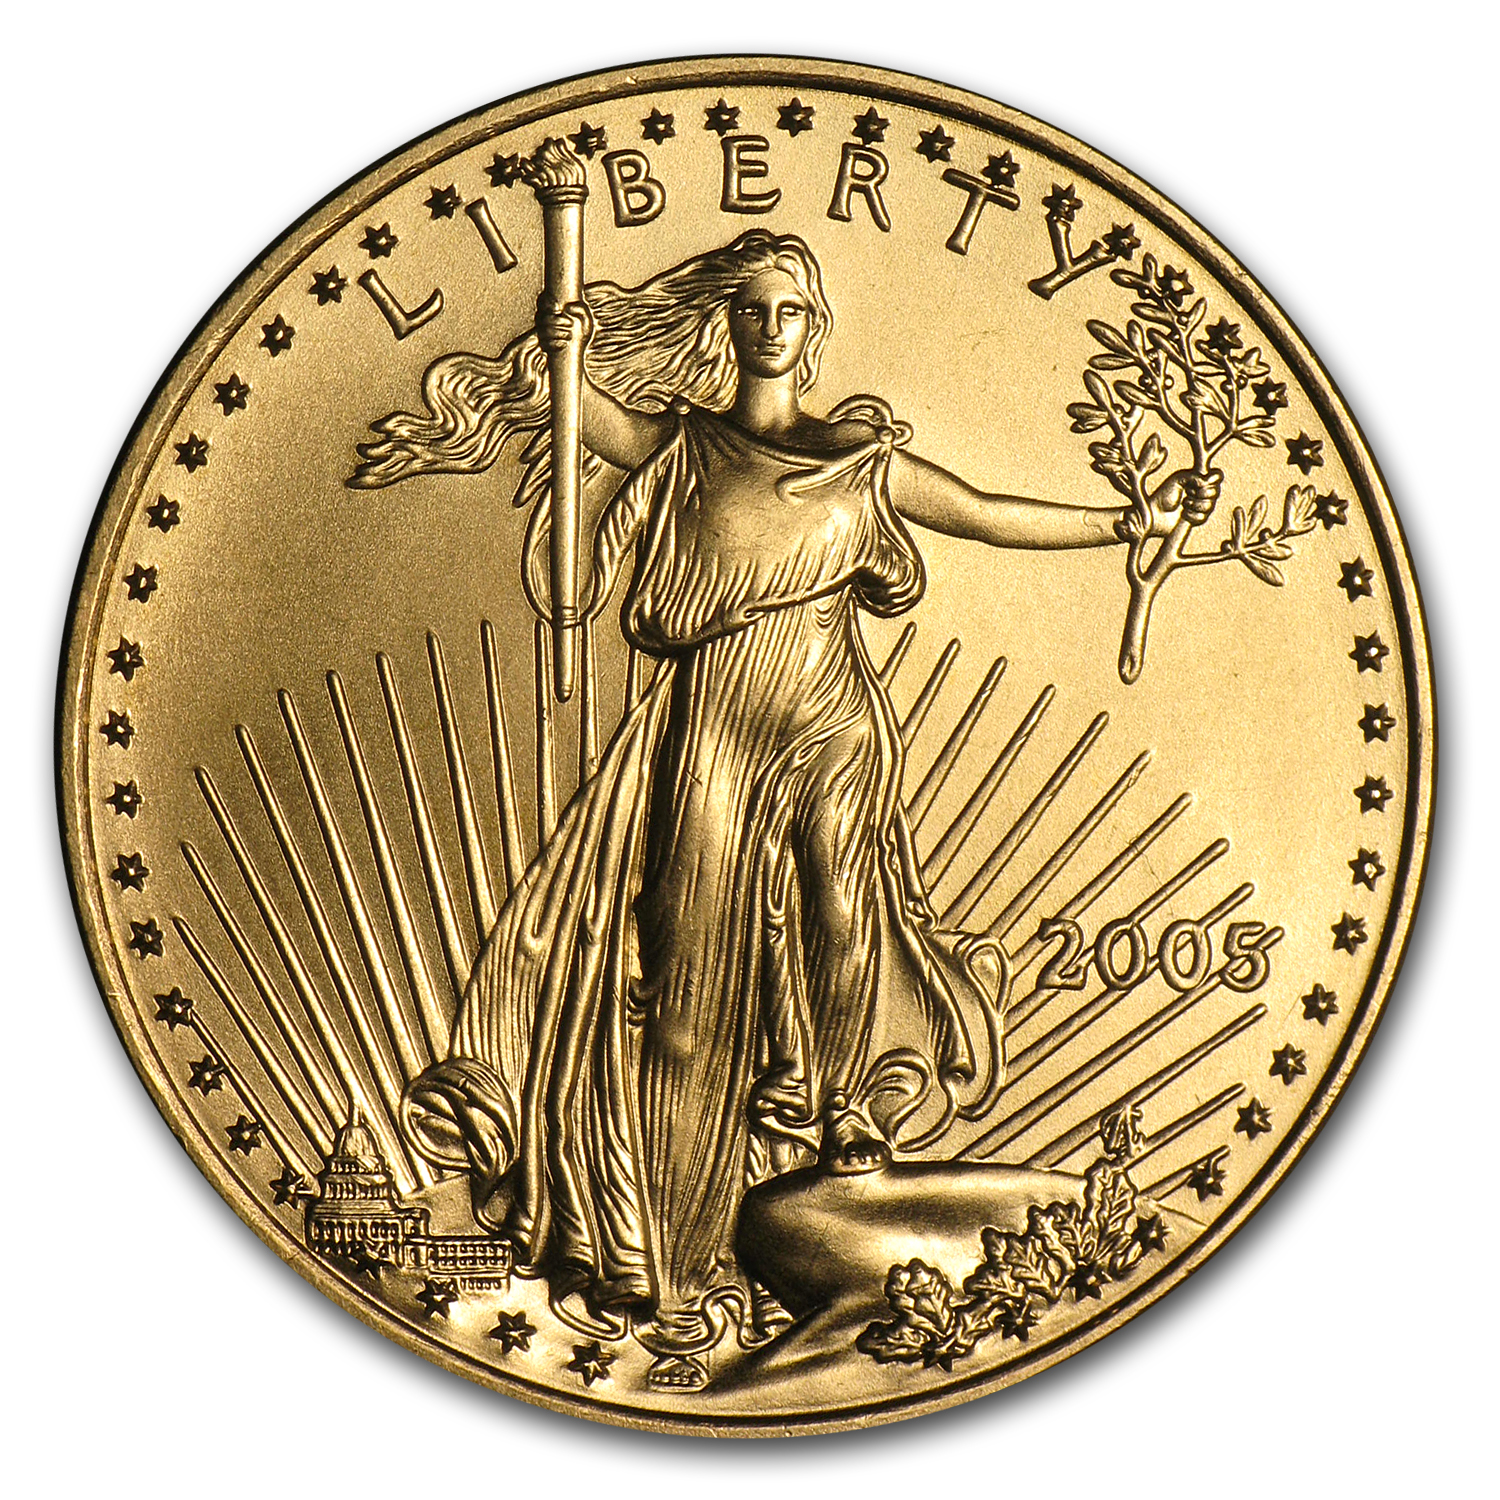 2005 1/2 oz Gold American Eagle (BU)